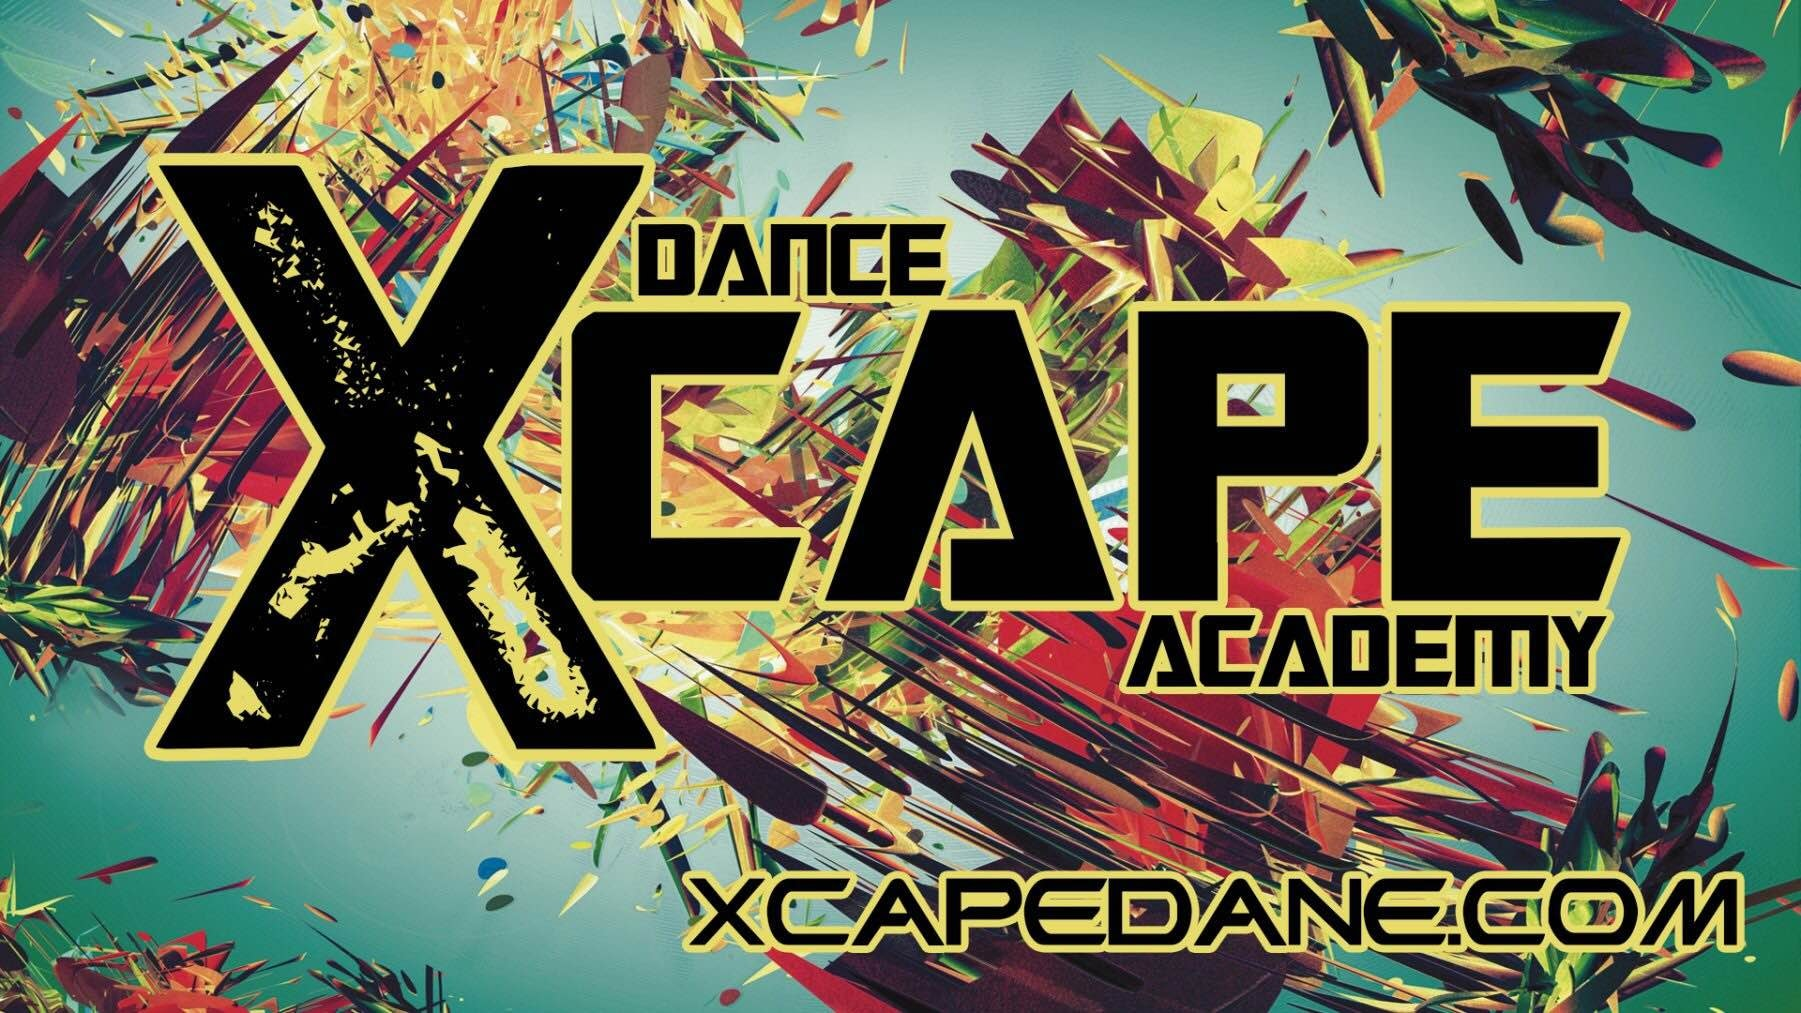 Xcape Dance Academy